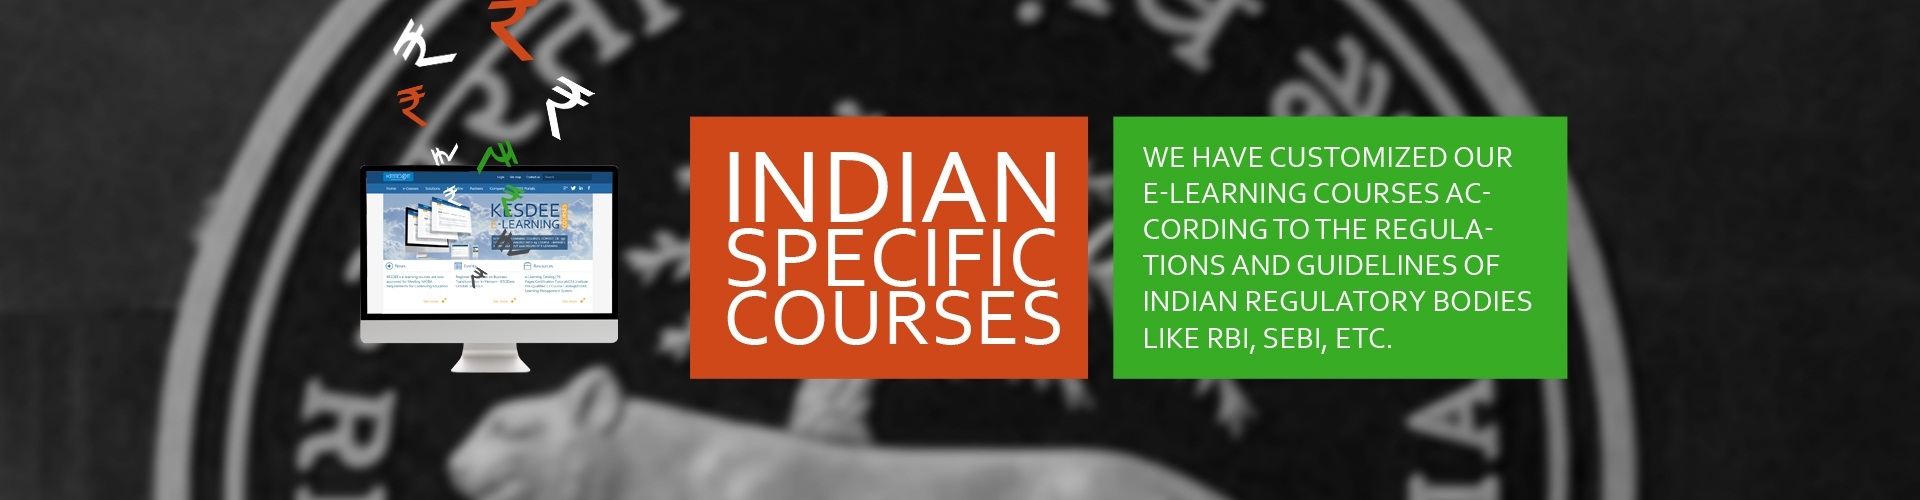 kesdee india specific courses